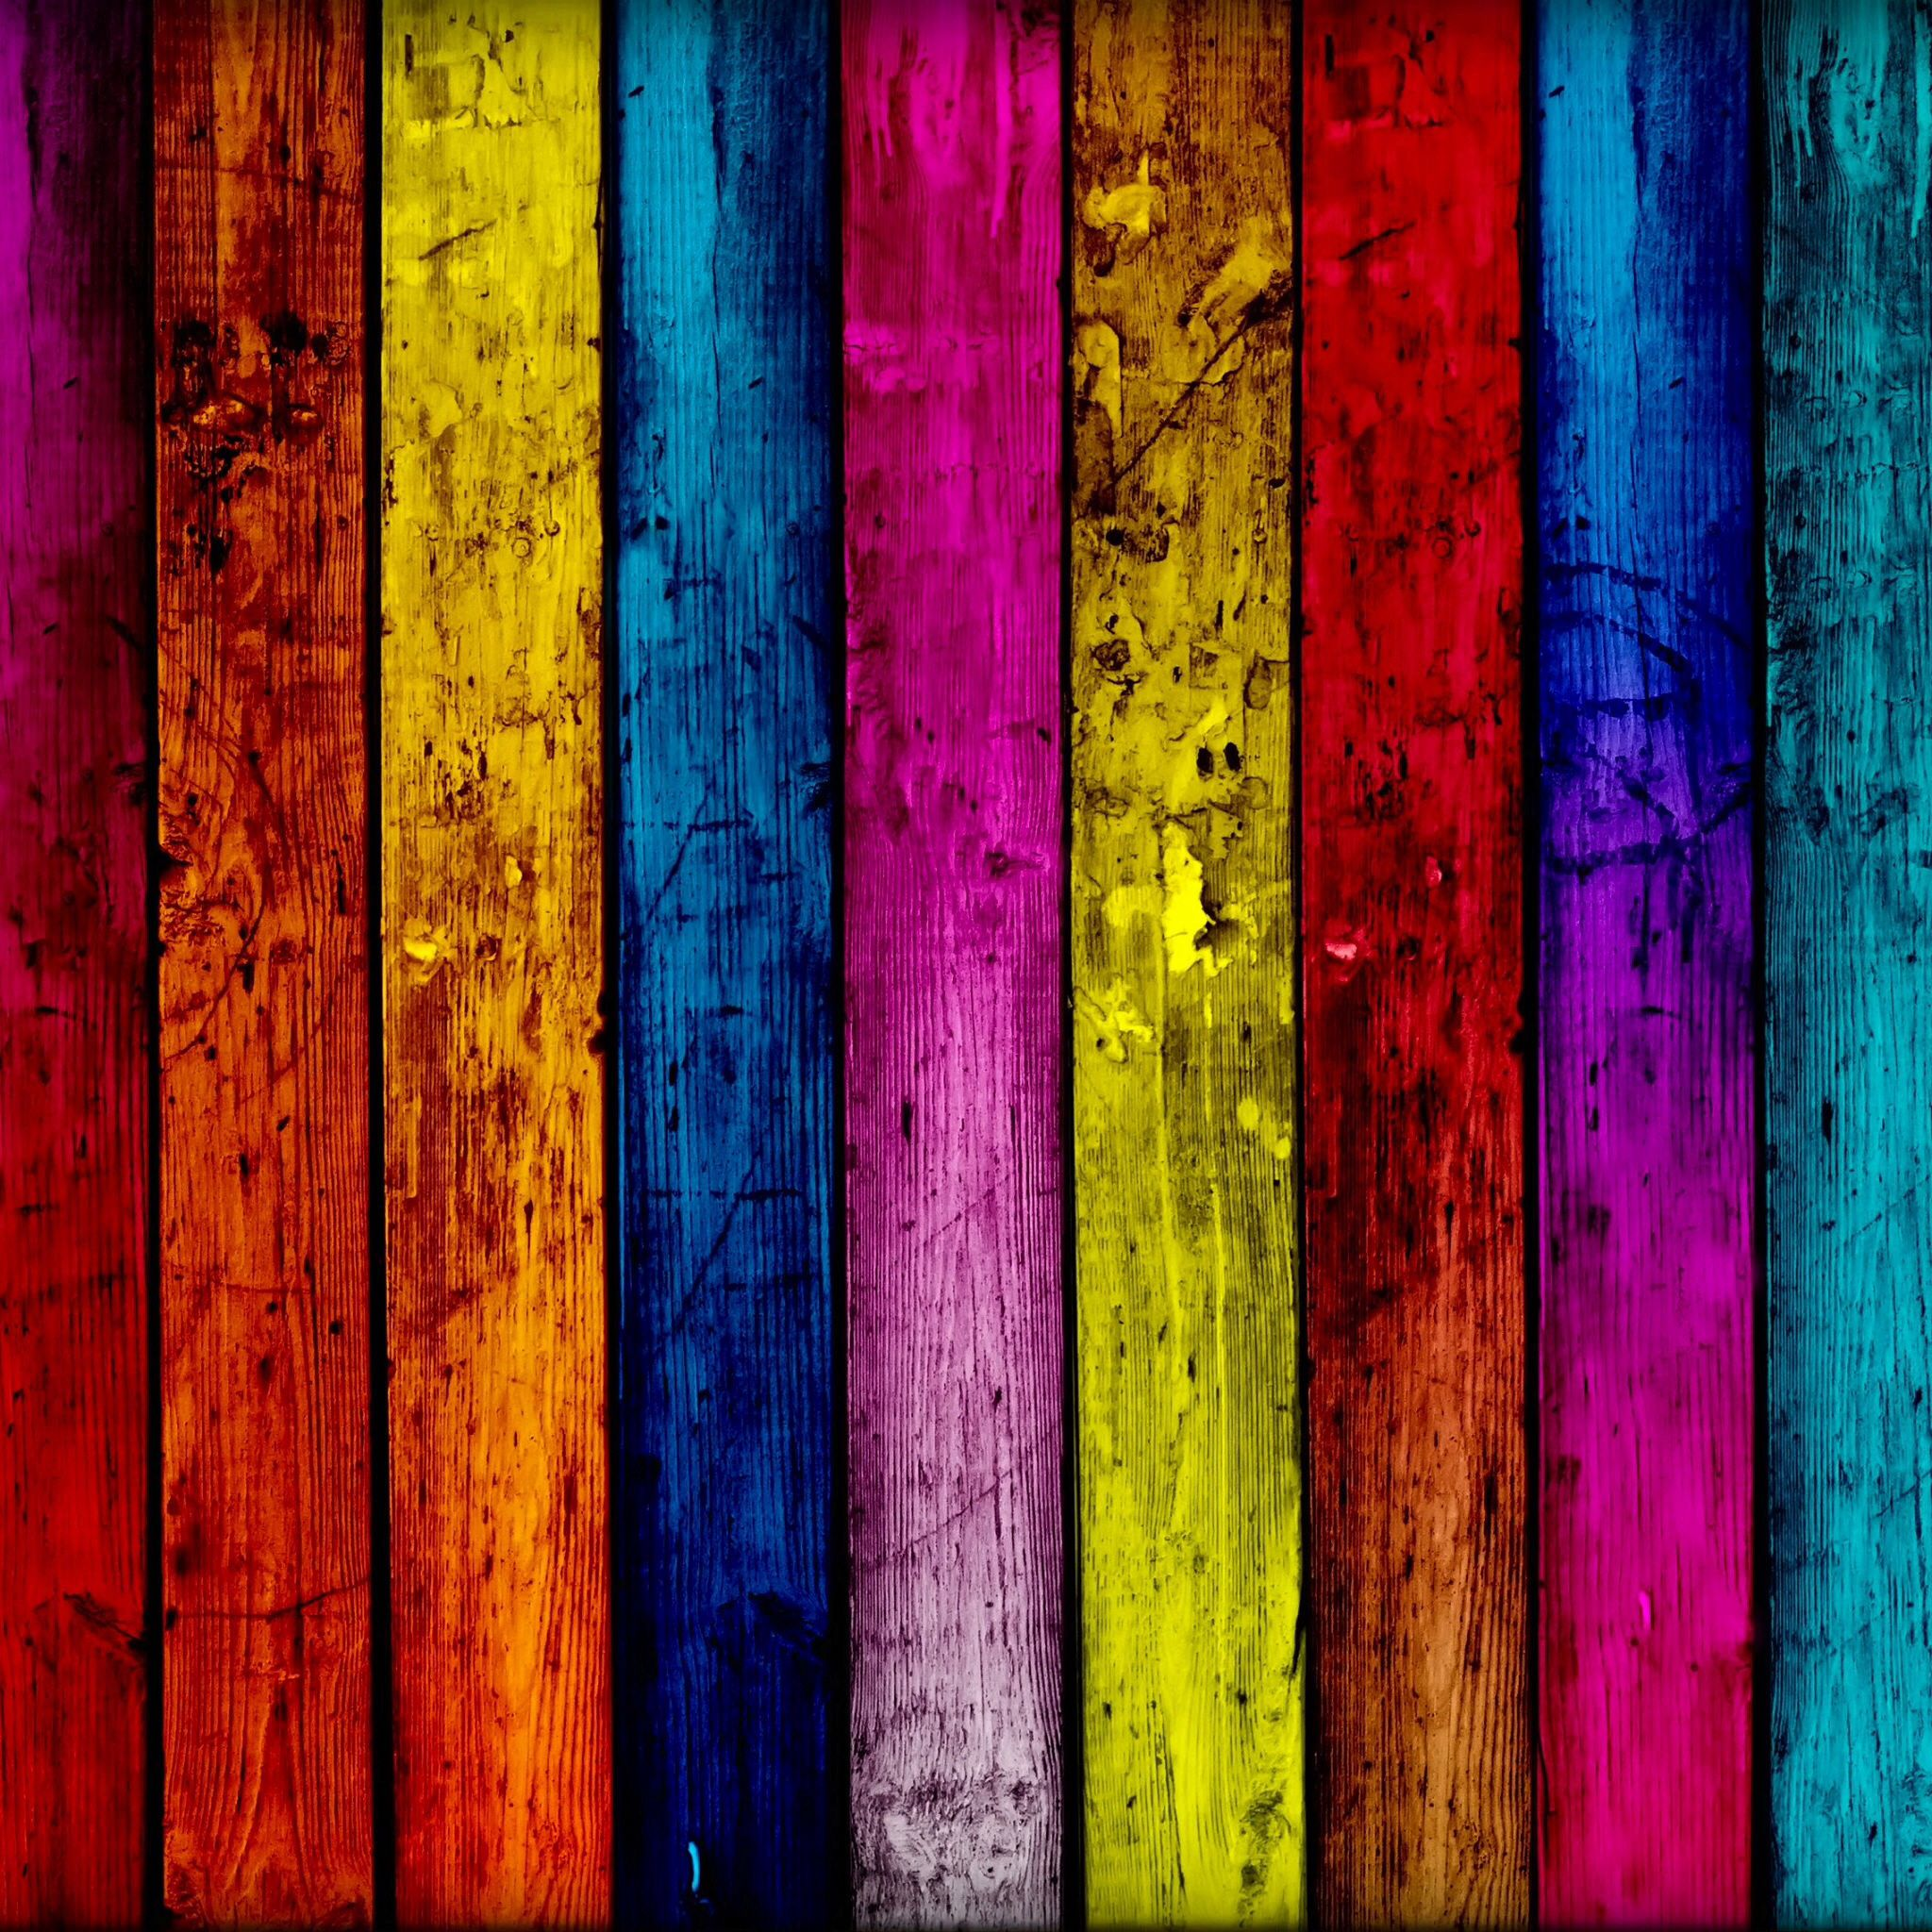 Colorful Iphone Wallpaper: Colorful Wall